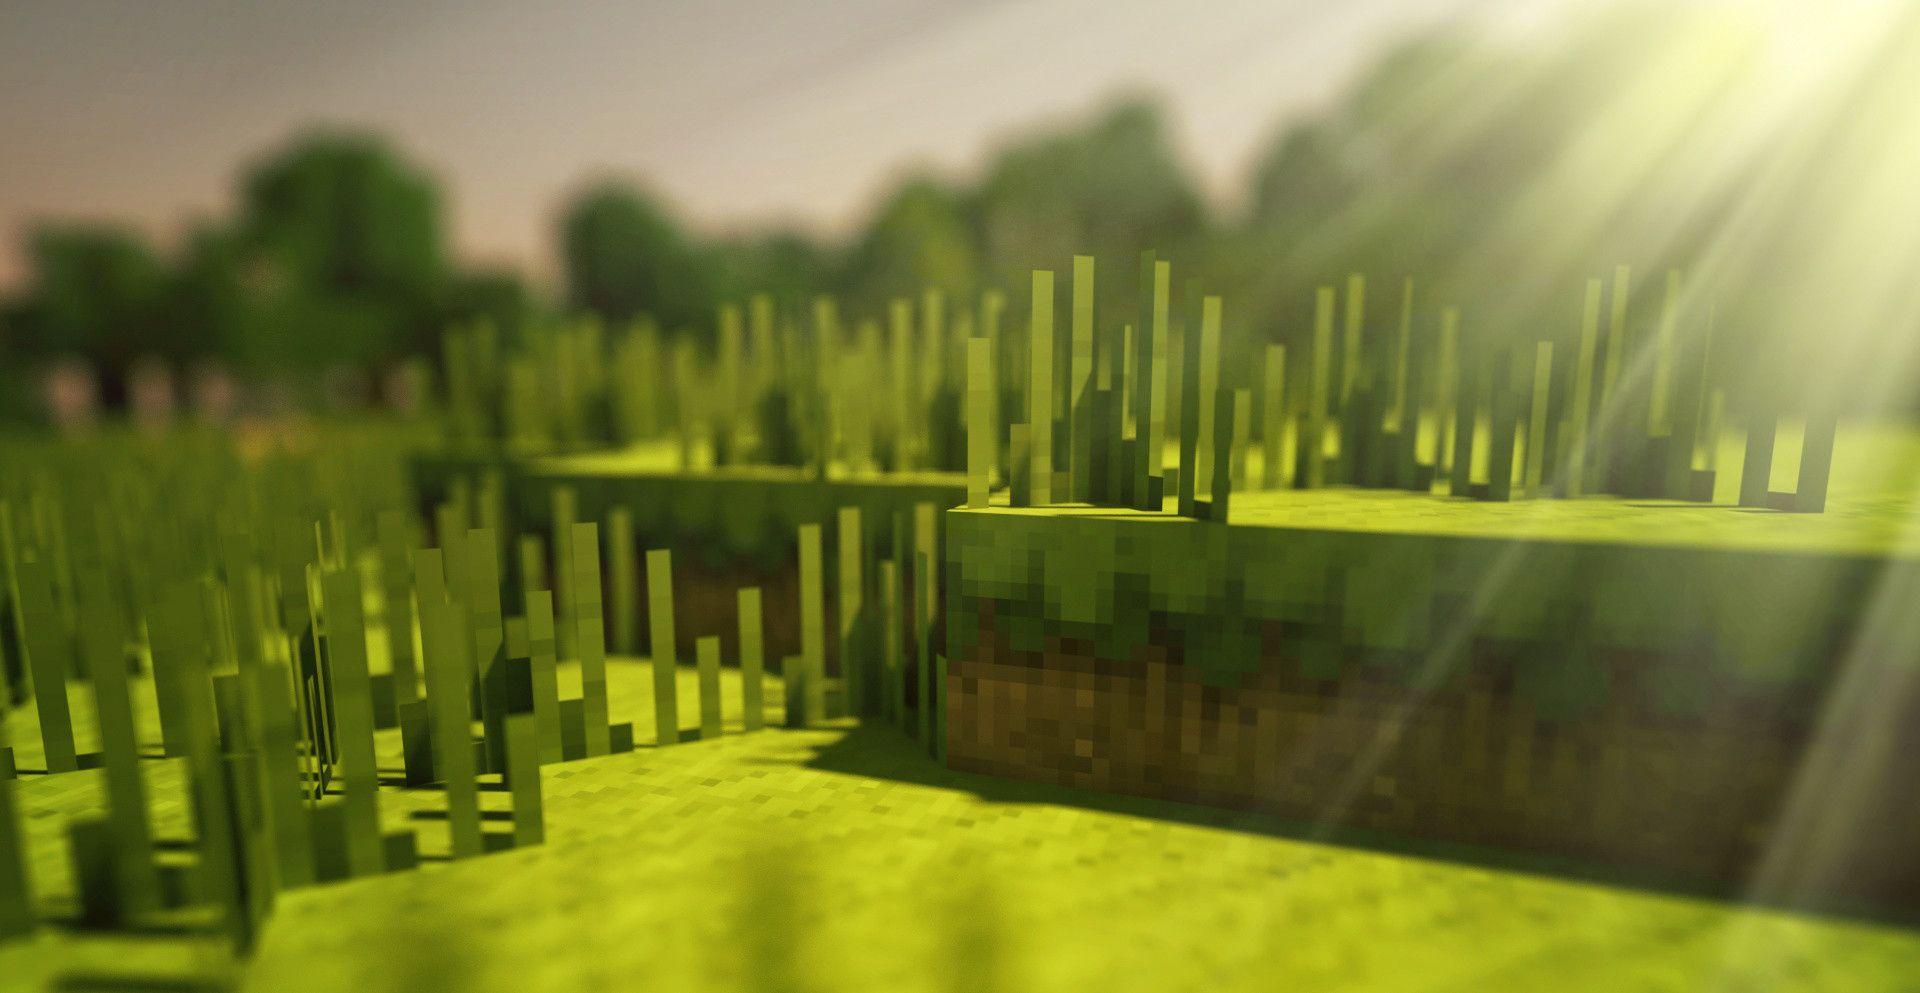 Minecraft Wallpaper Hd Wallpapers Download Free Minecraft